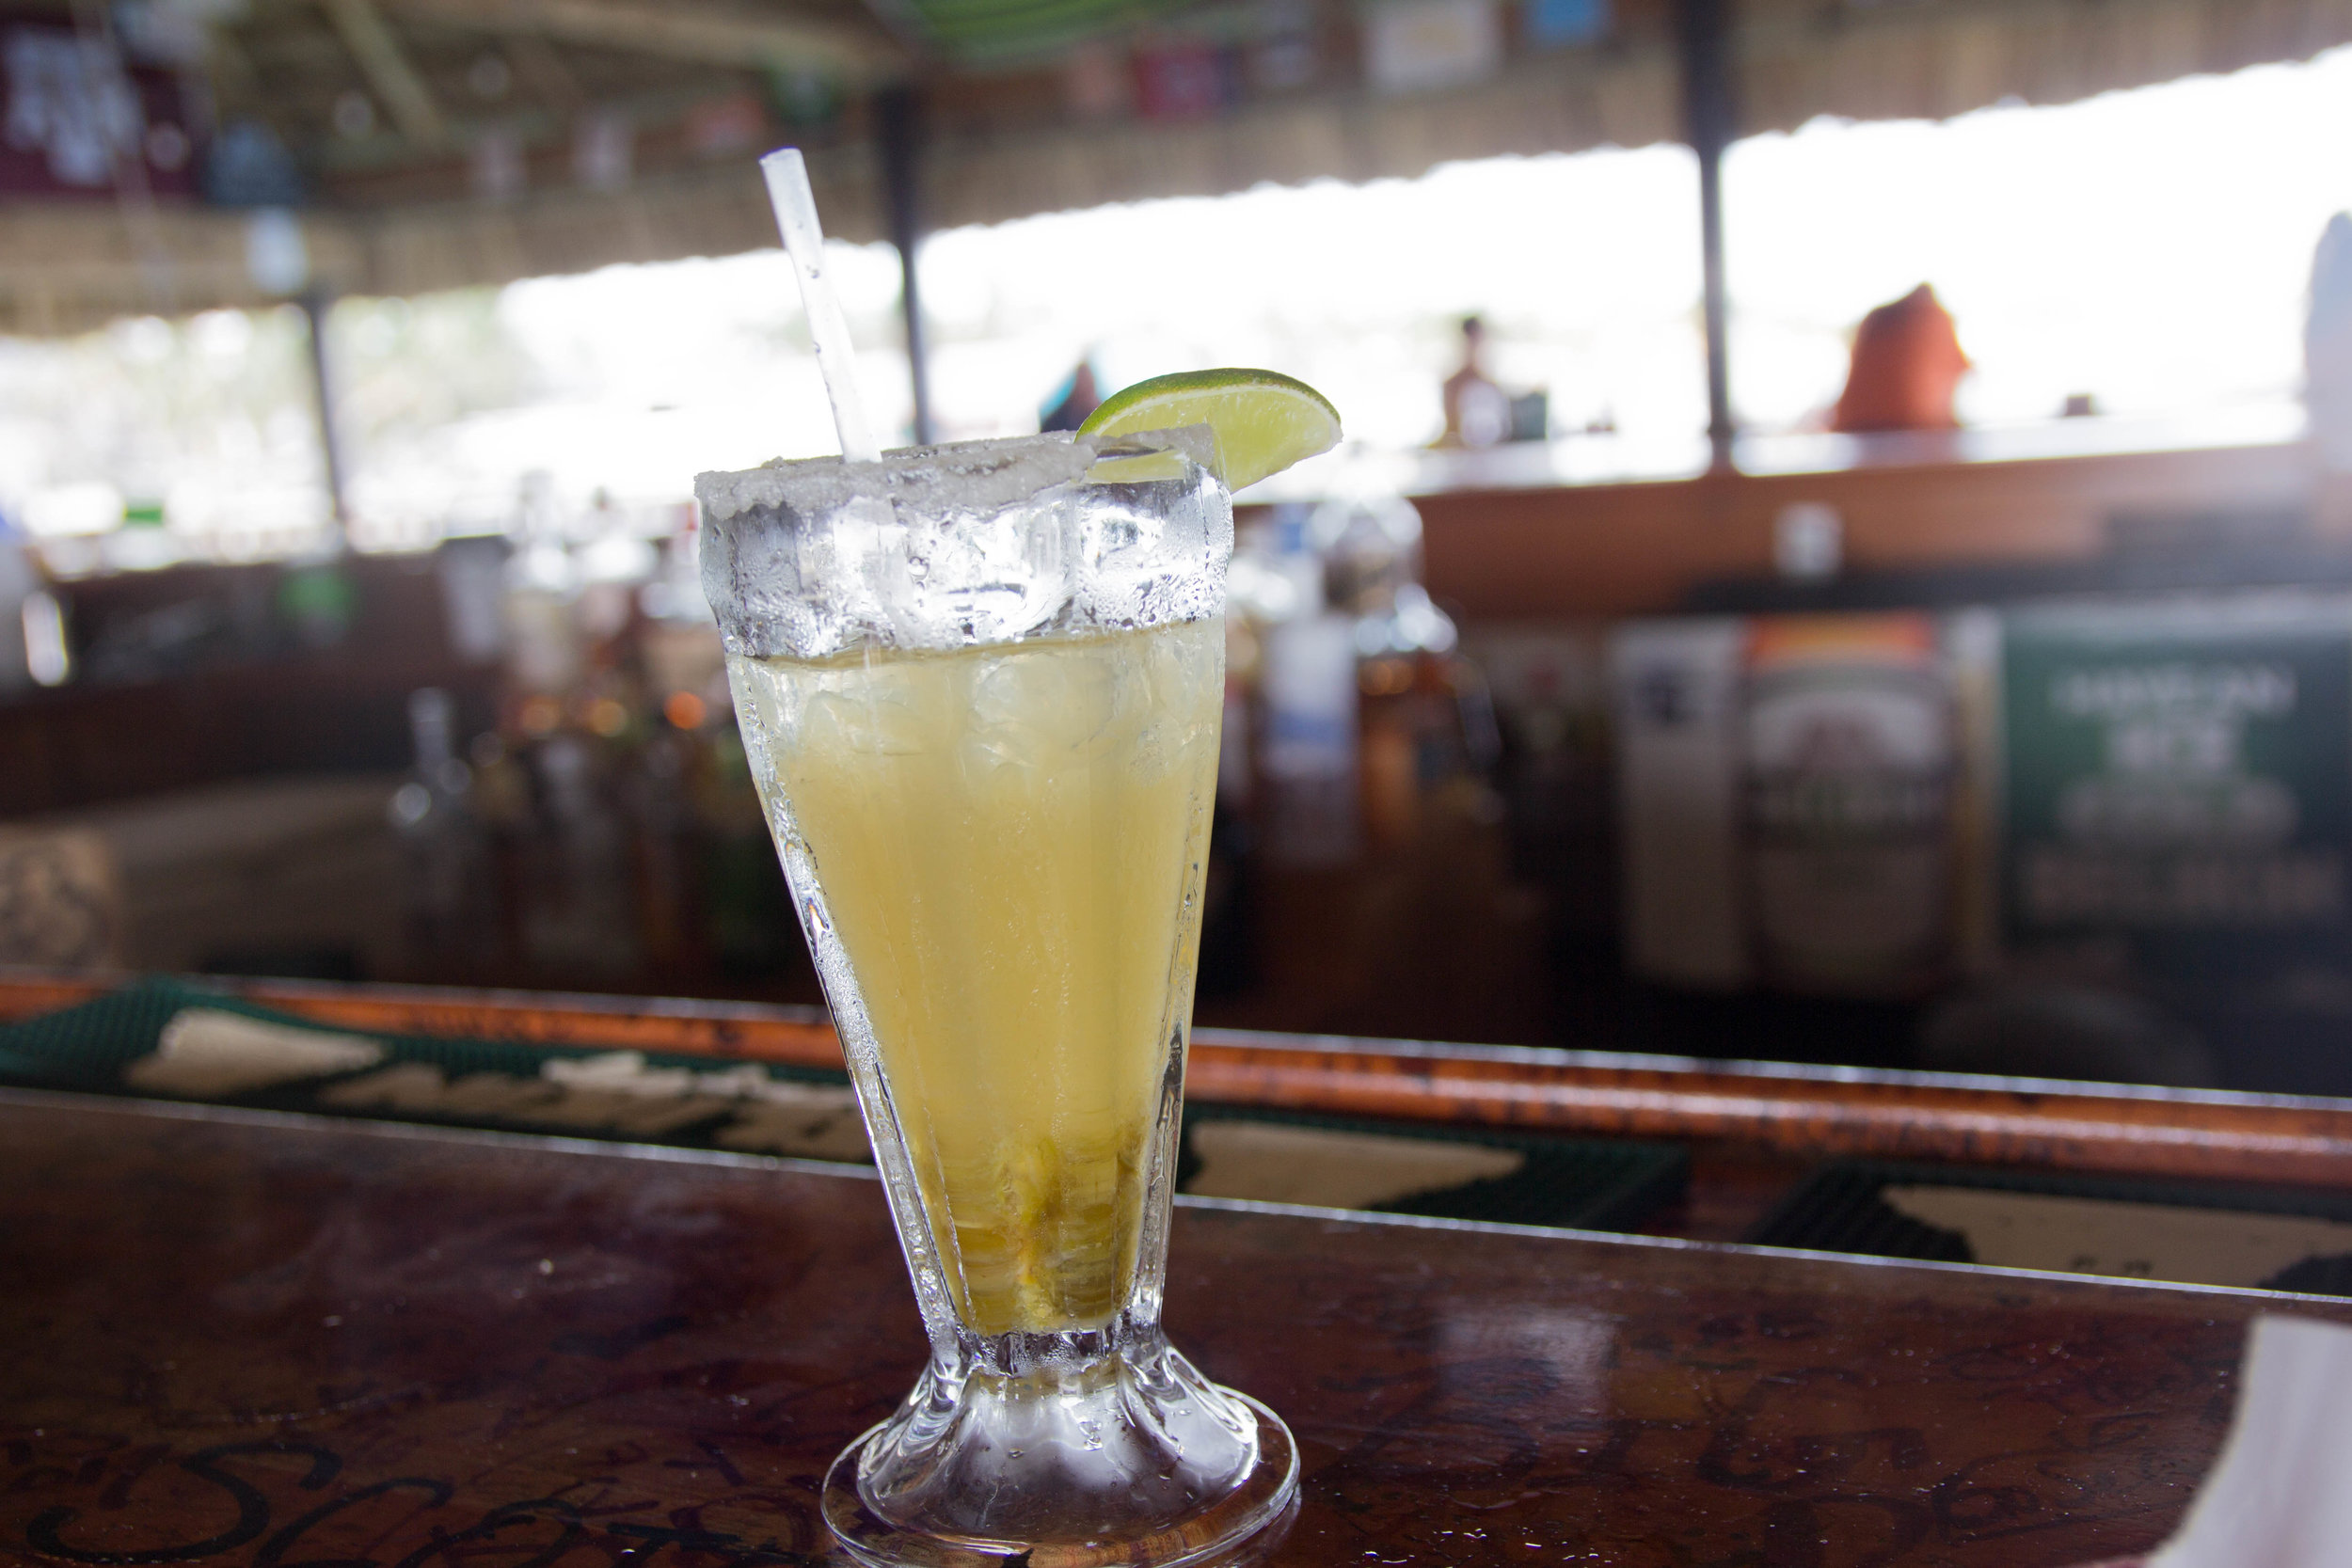 palapa bar, san pedro ambrgris caye, belize travel guide, anniversary trip ideas, where to travel in central america, travel blogger, what to do in belize, where to go in belize